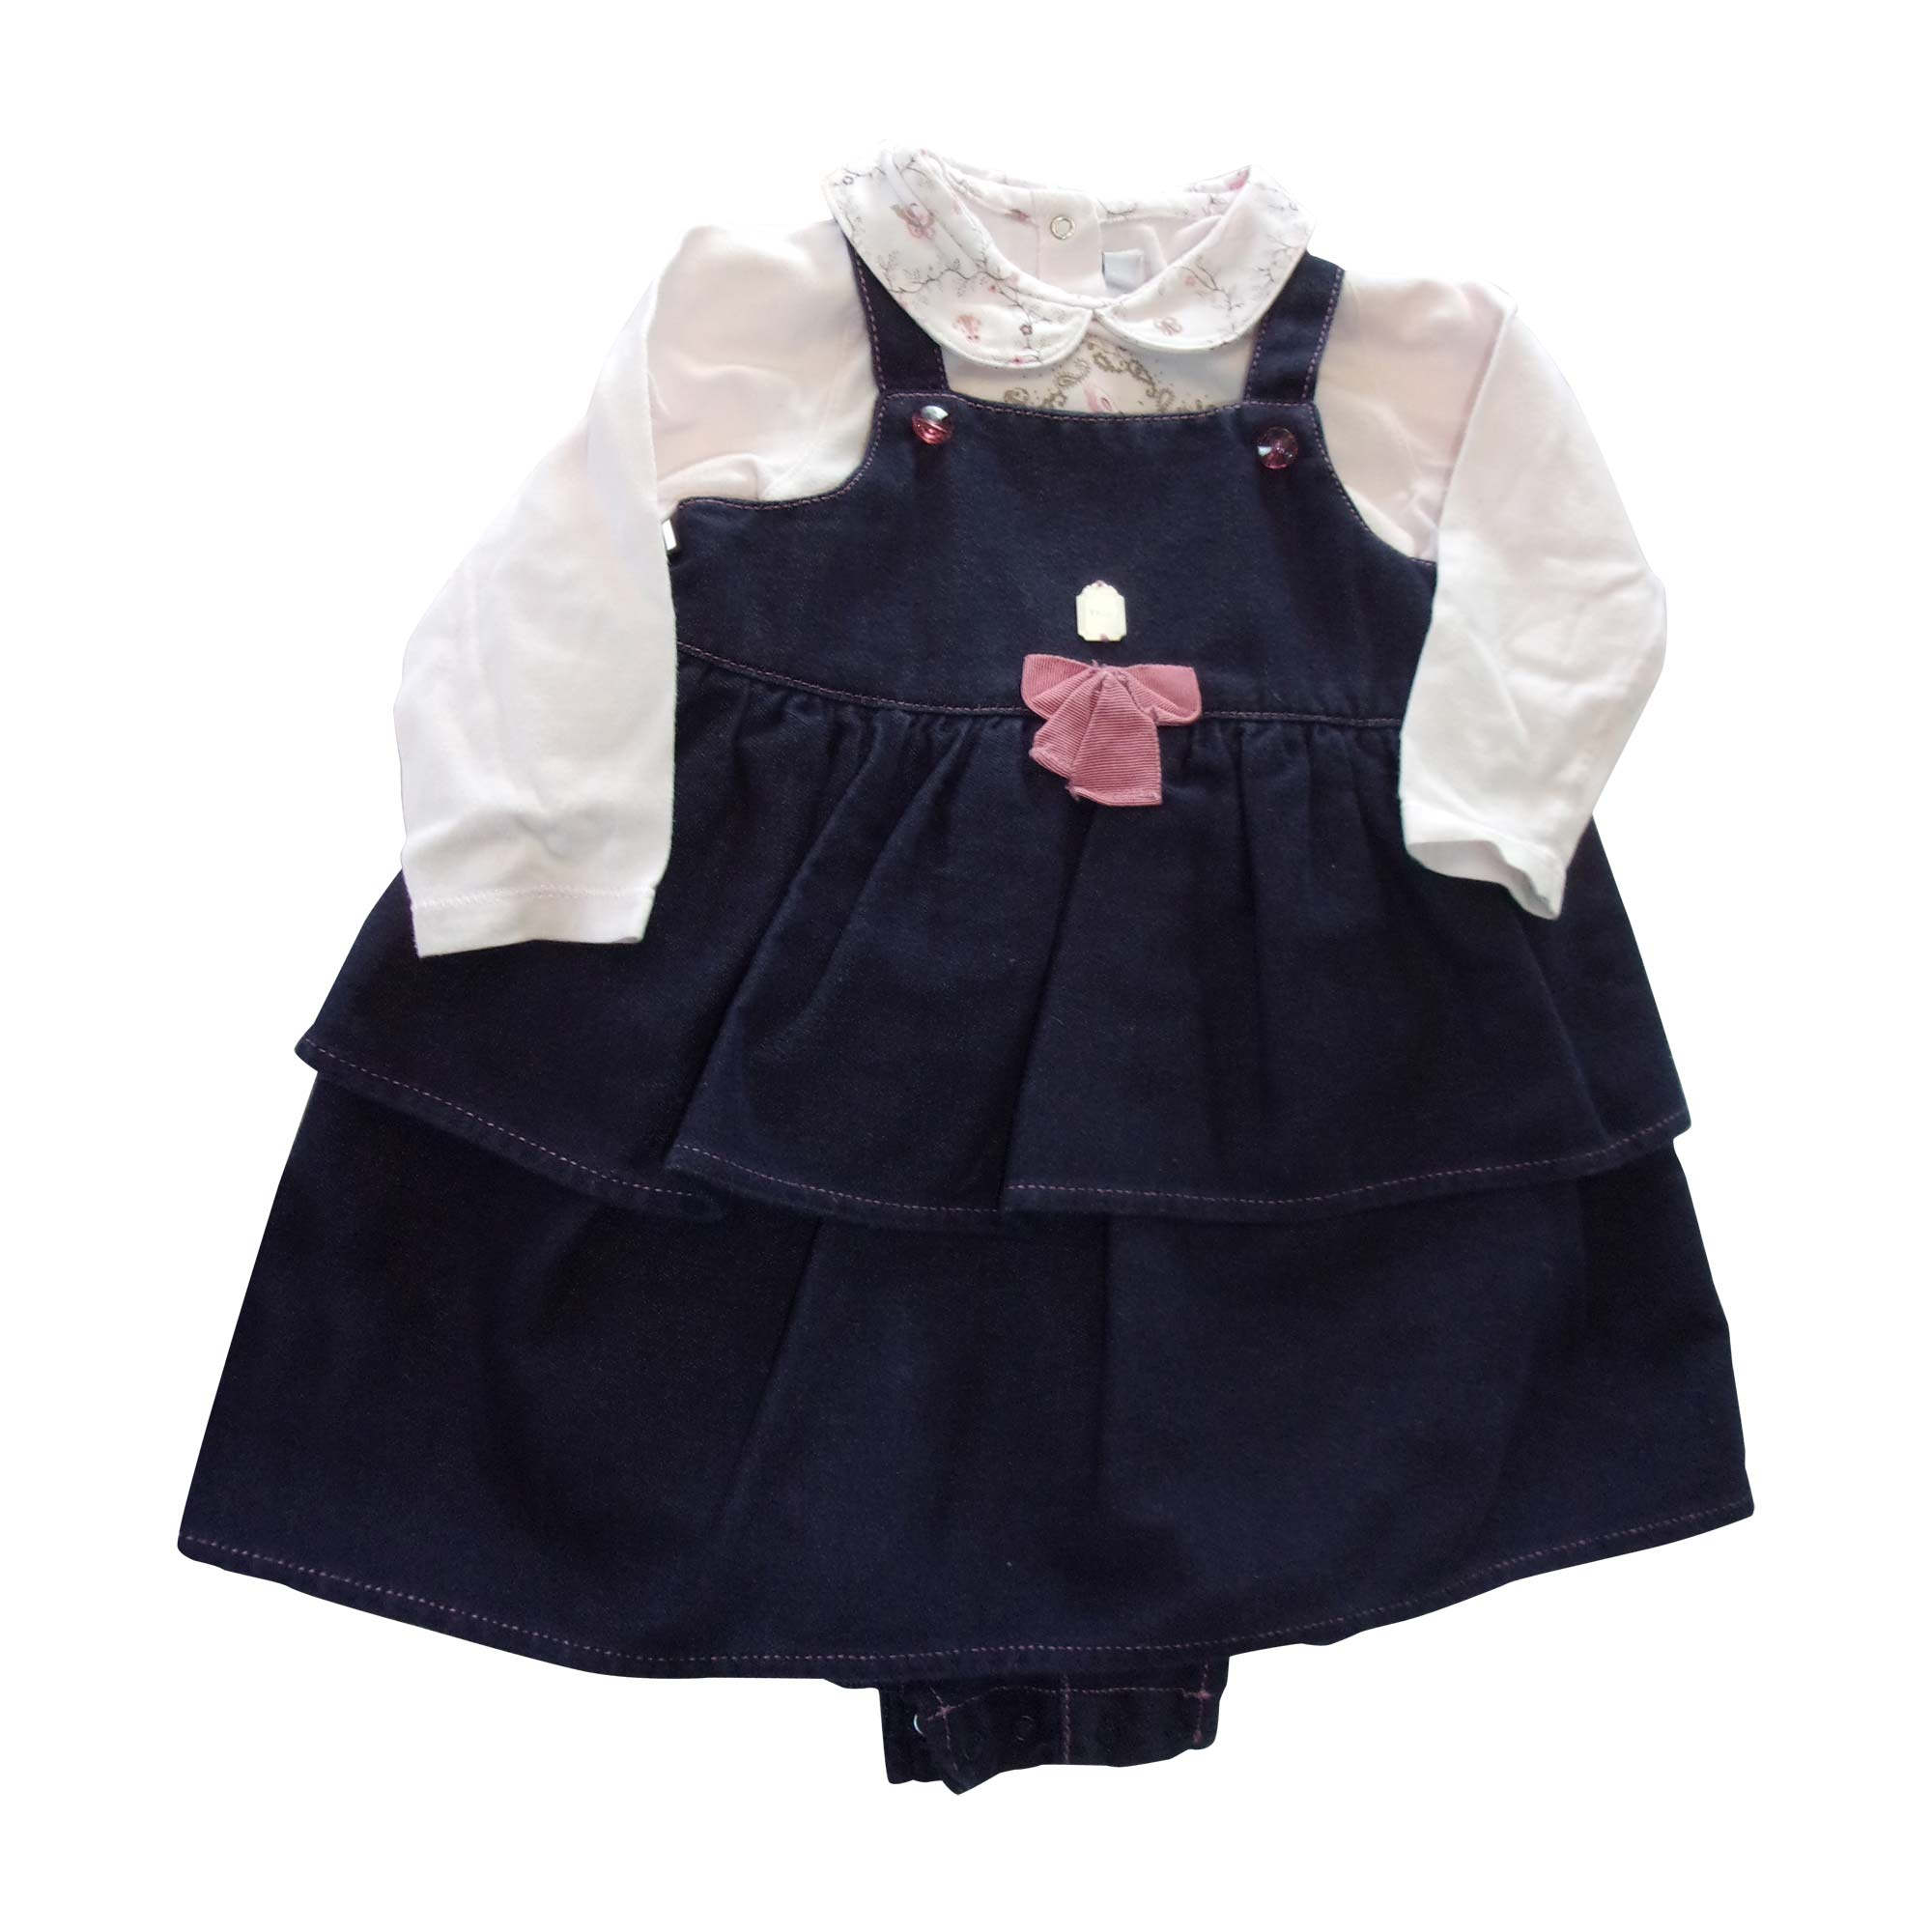 Dress BABY DIOR Multicolor